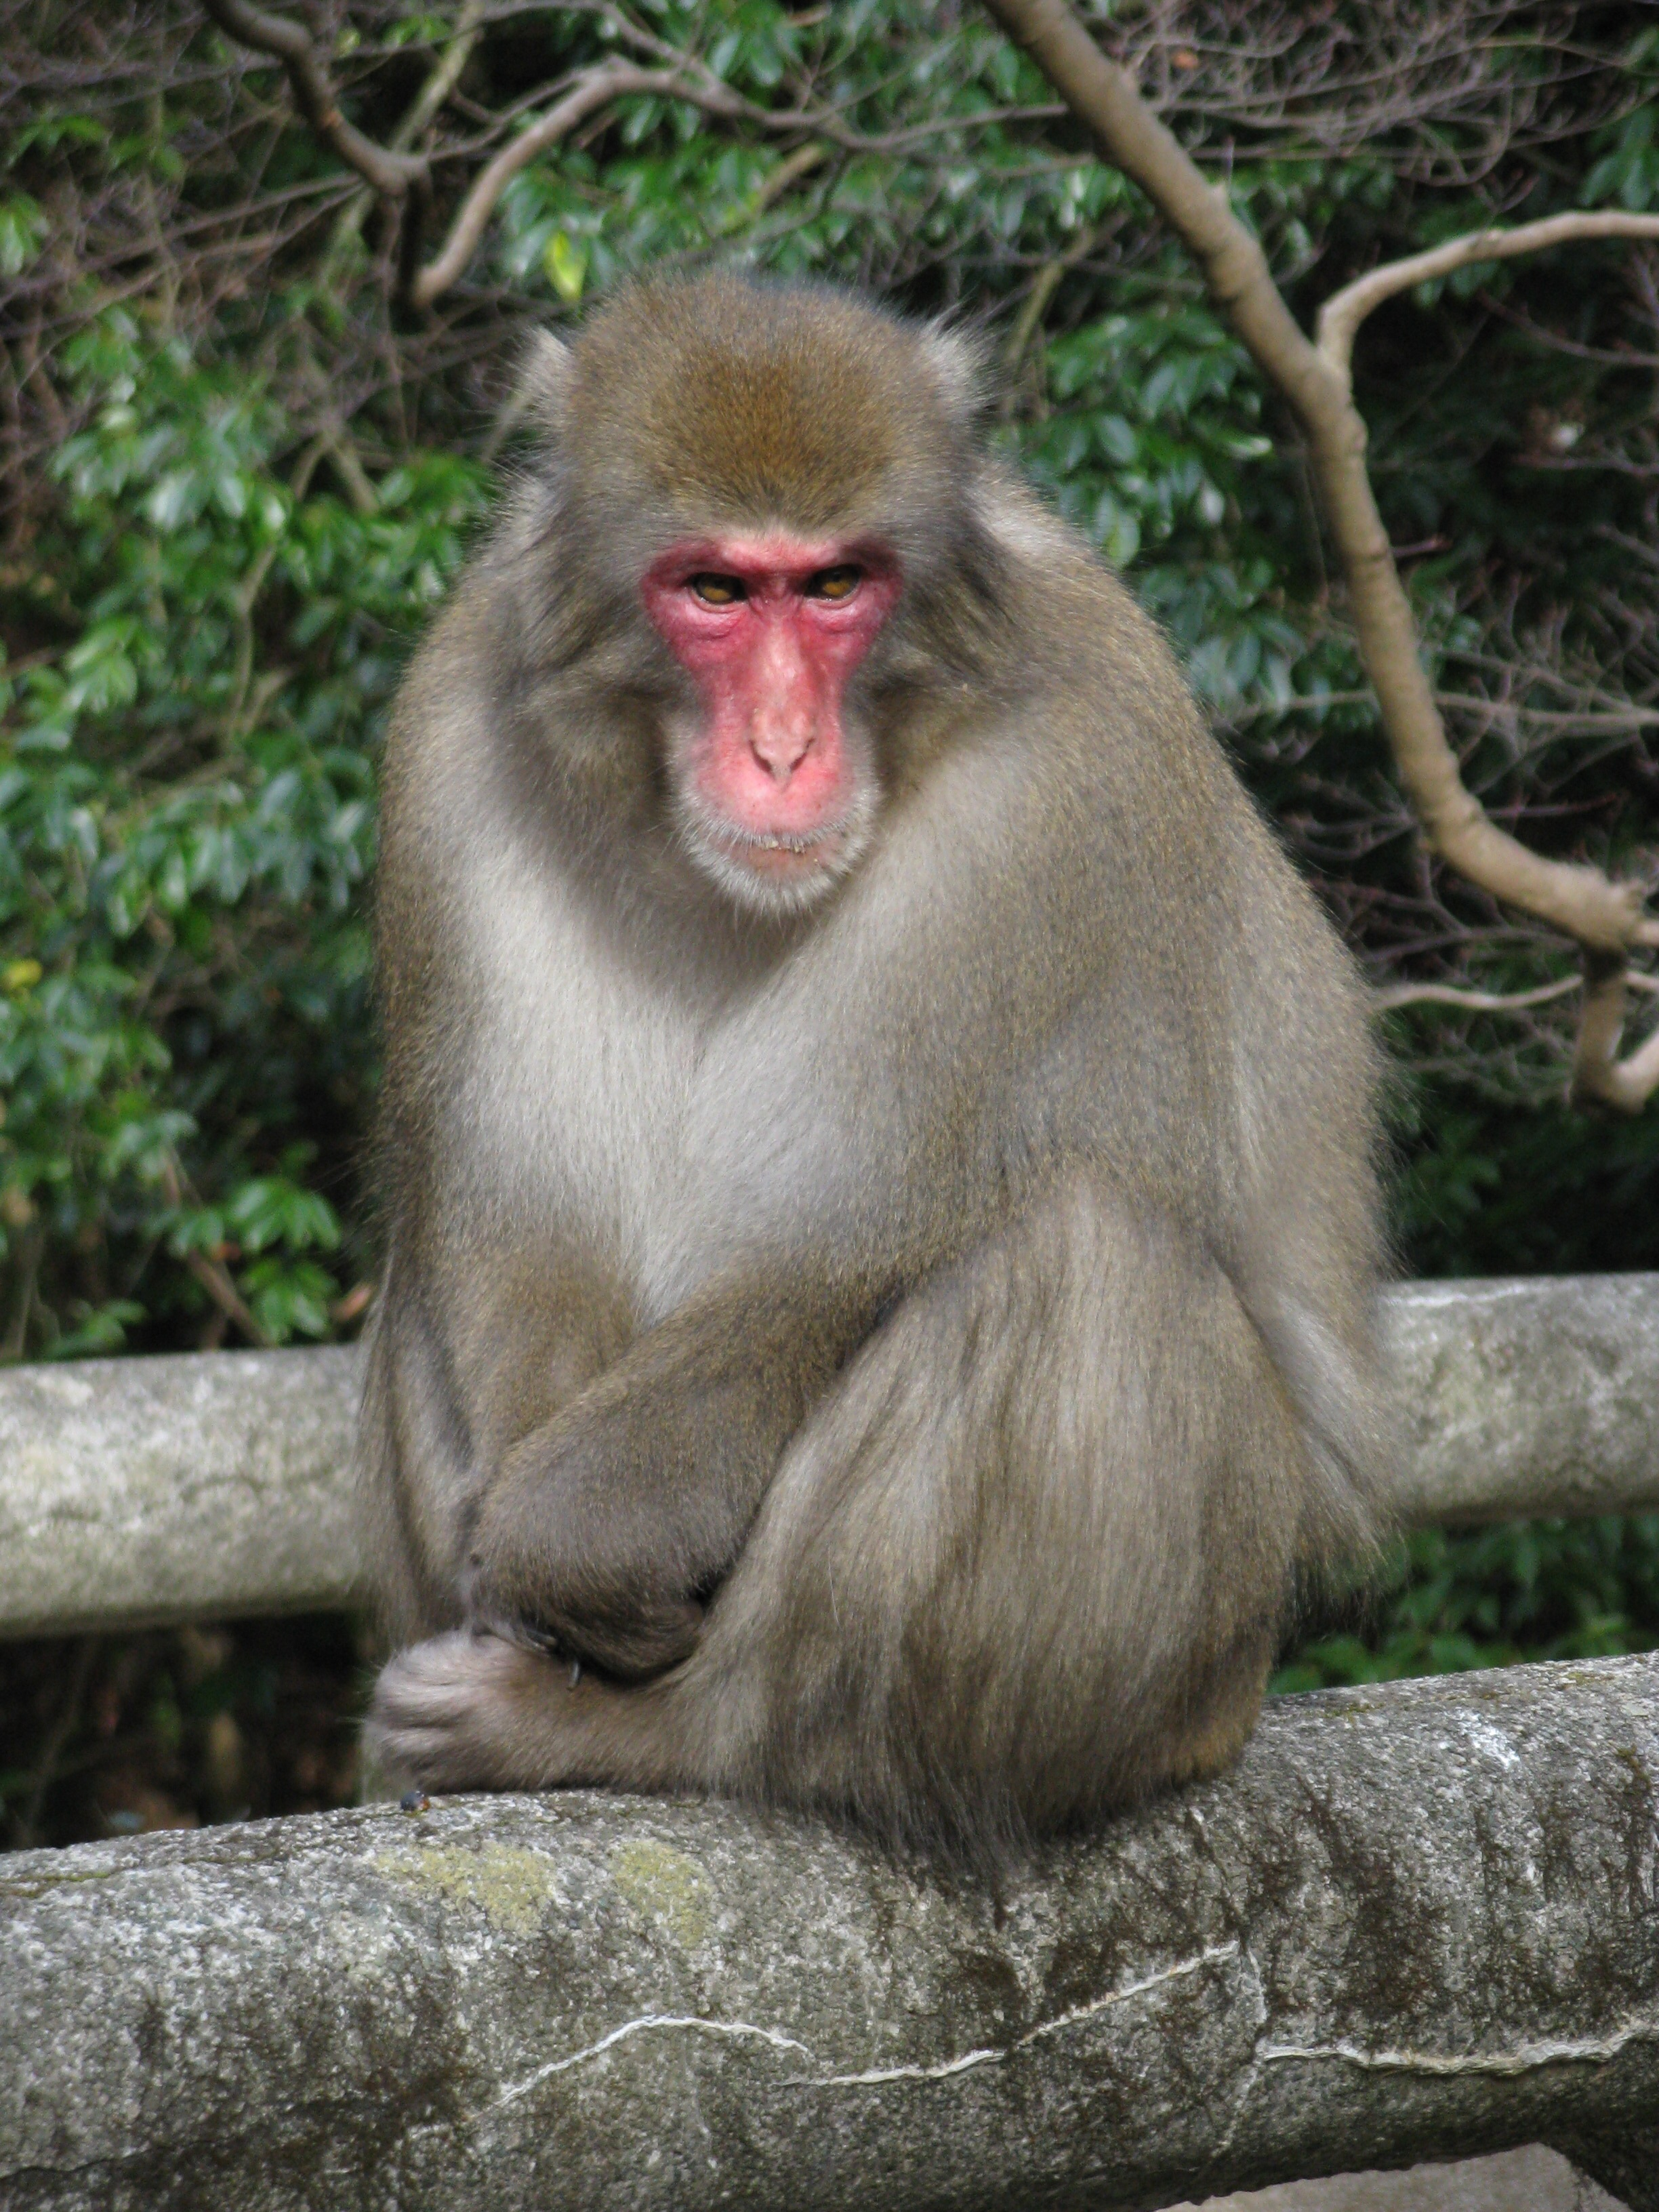 Japanese macaques predators predators sex offenders